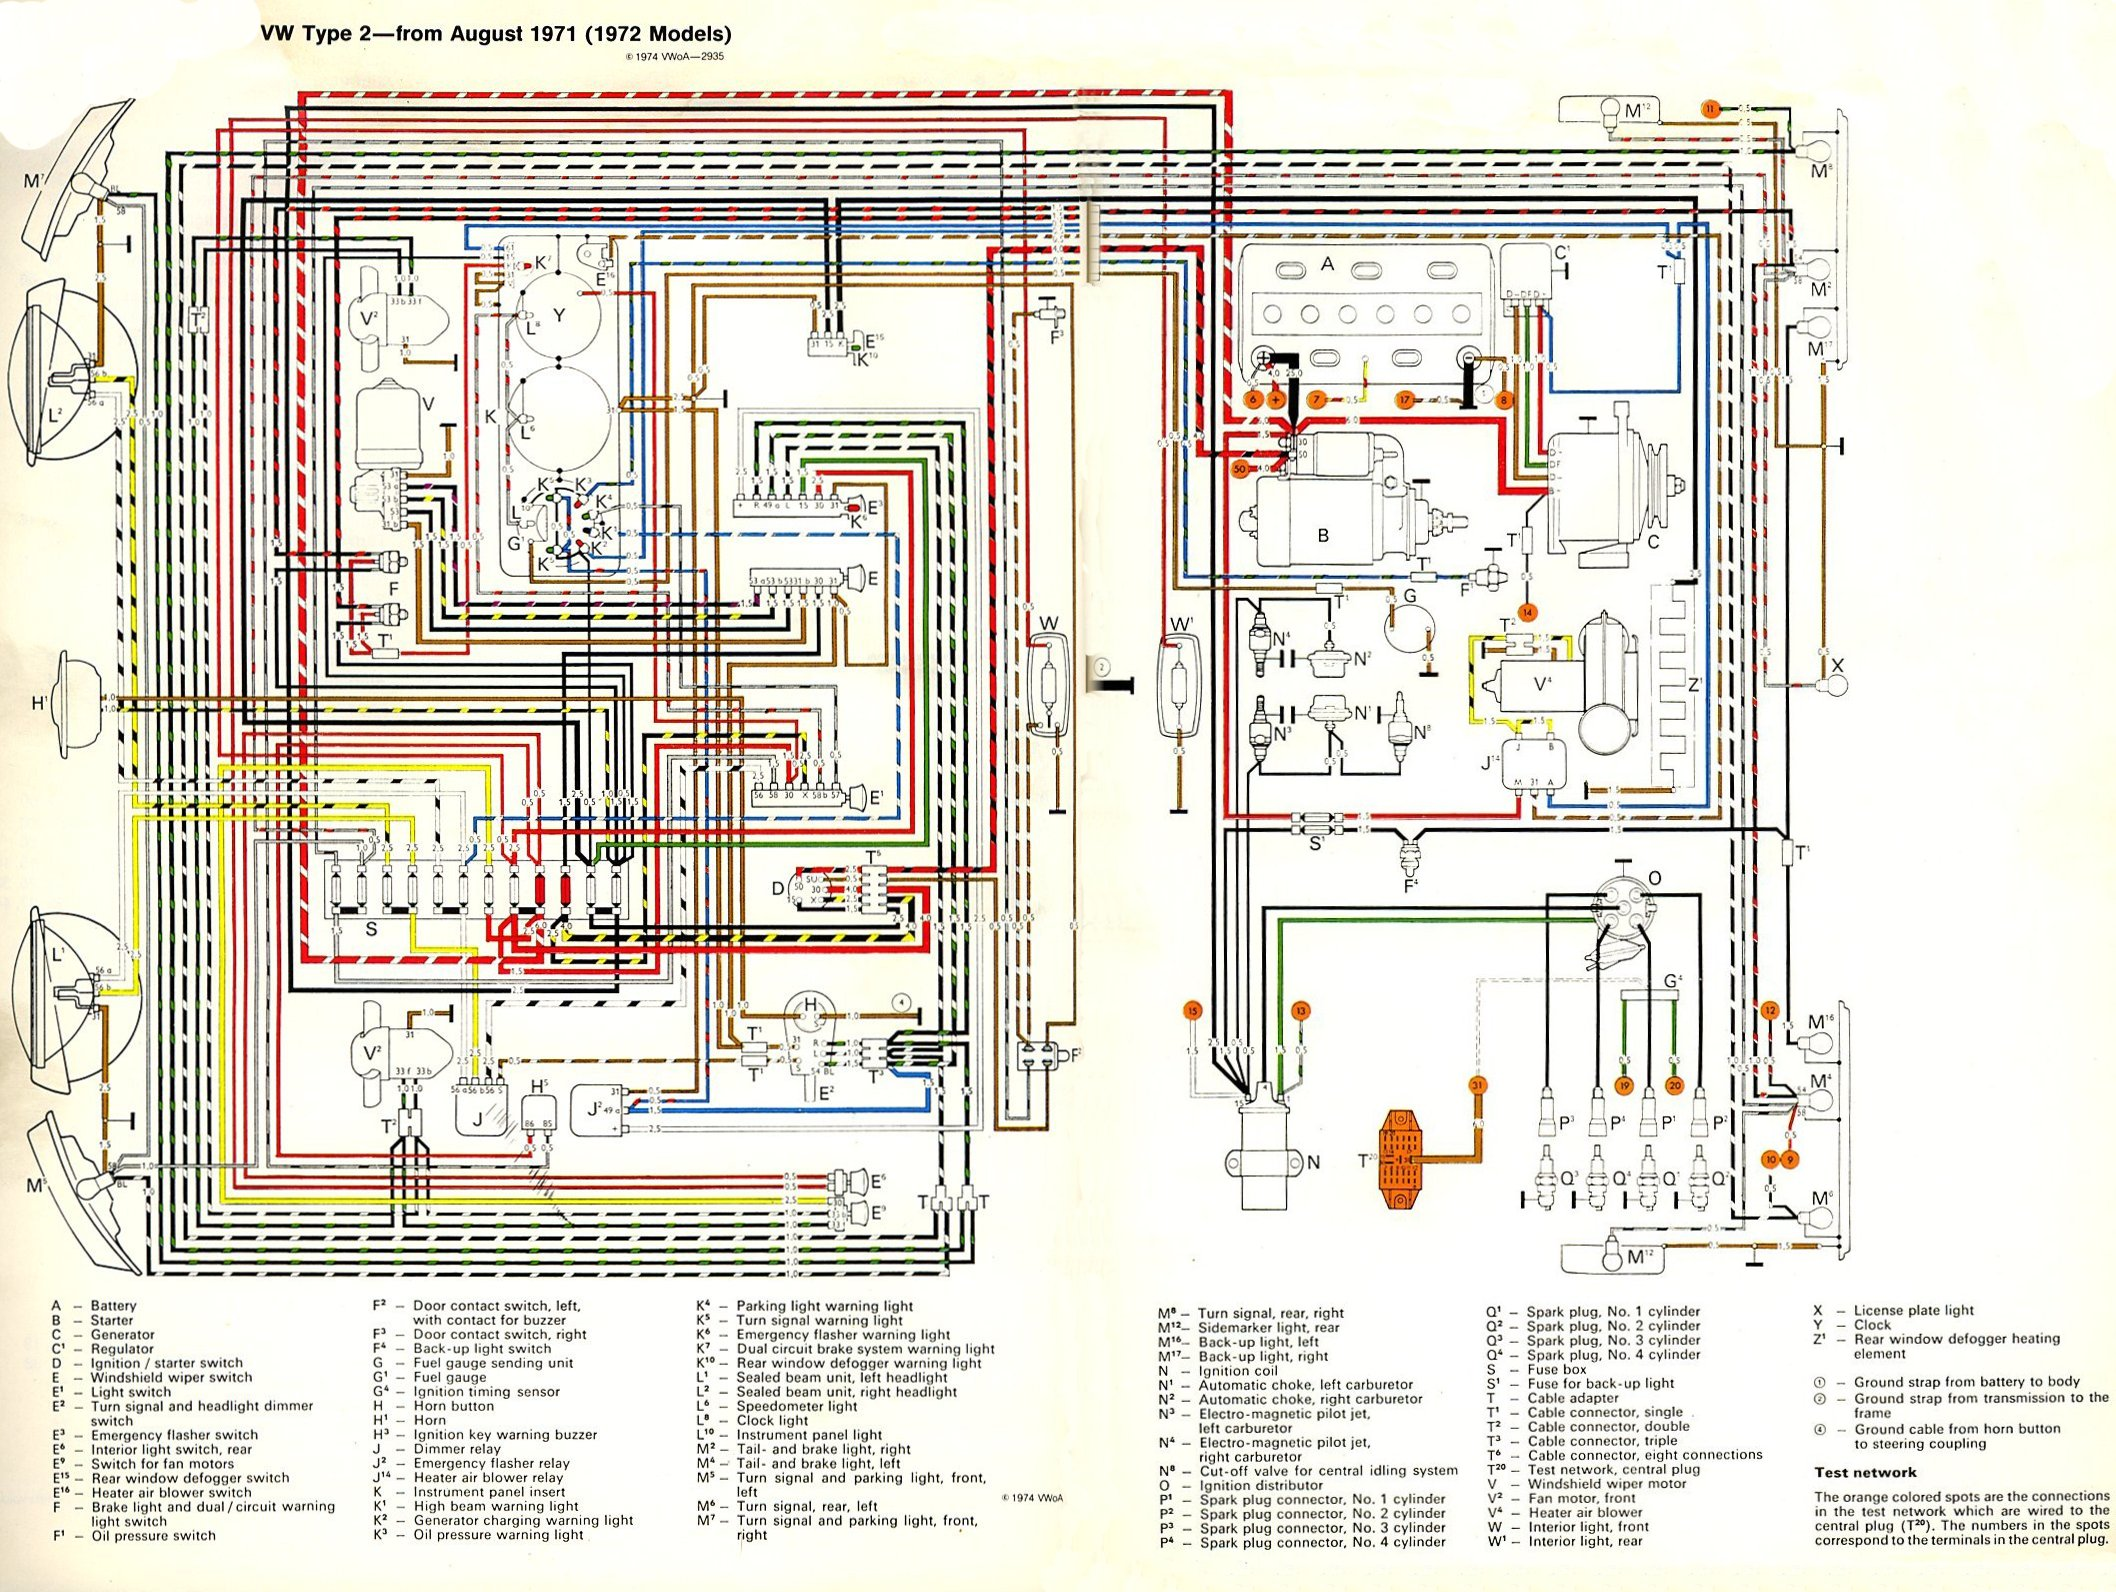 bus_1972_wiring 28 [ vw bus wiring diagram ] 1977 vw bus wiring diagram 1976 vw bus diagram at aneh.co